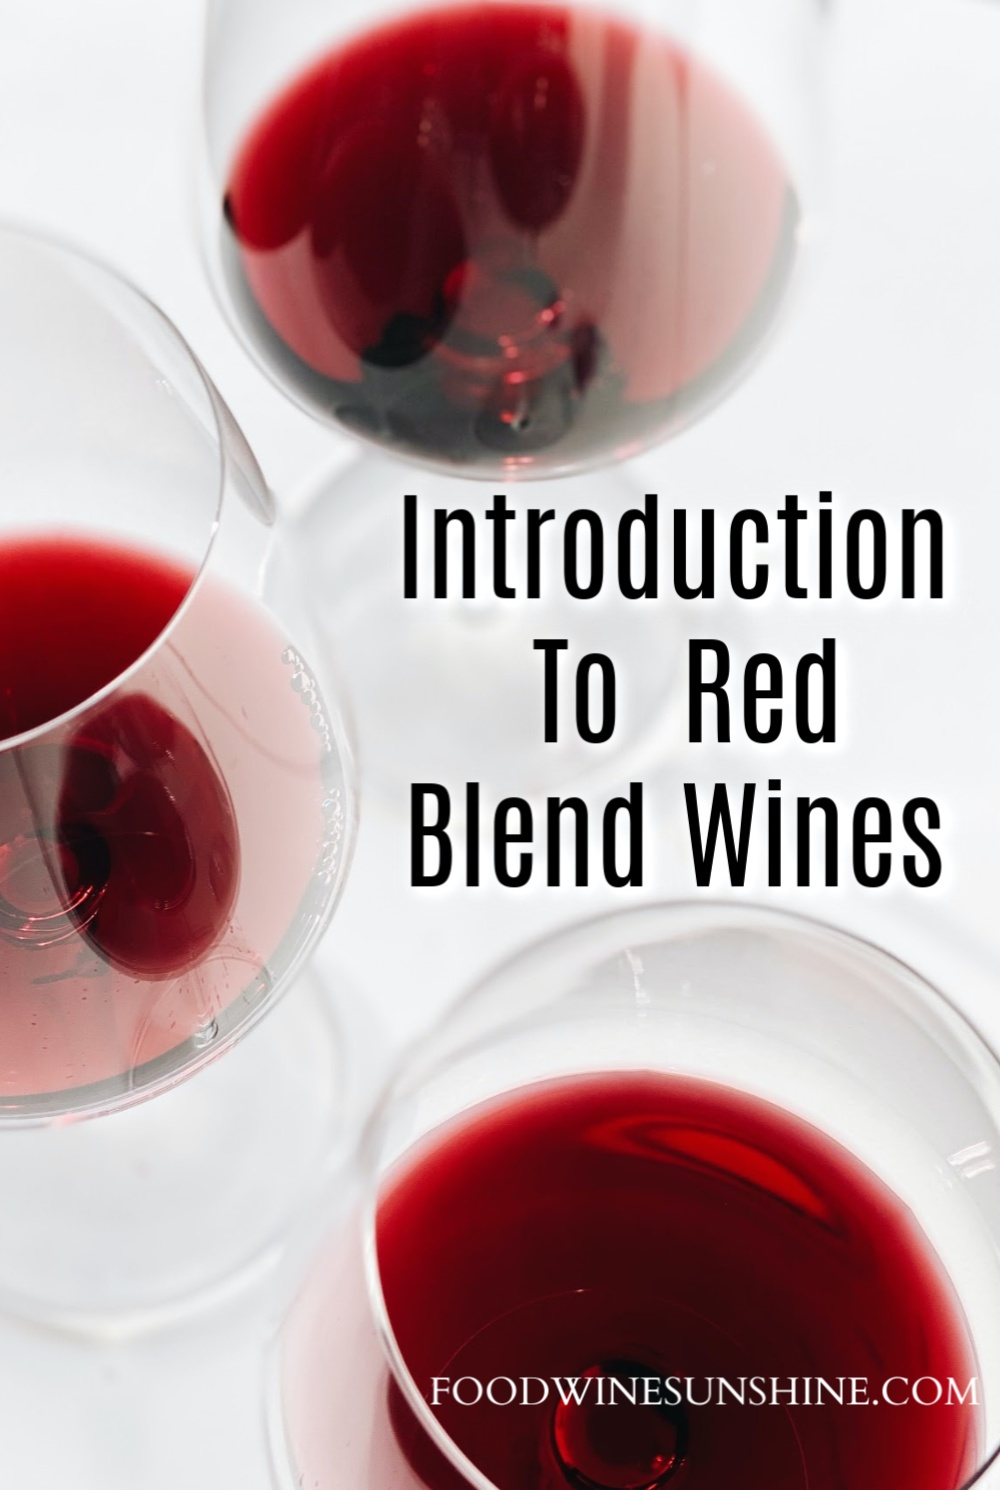 Introduction To Red Blend Wines